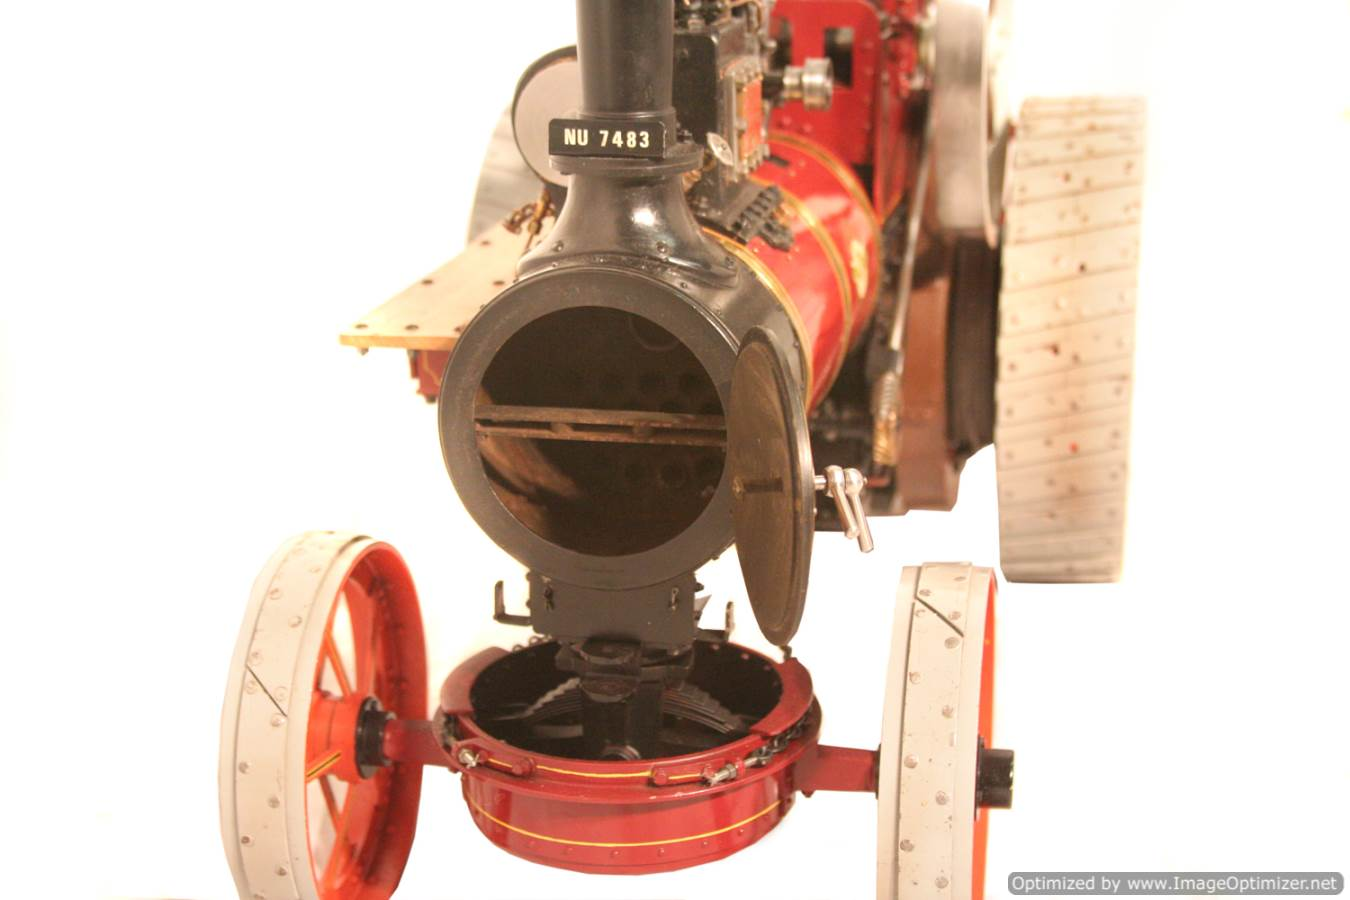 test Royal Chester Alchin Traction Engine for sale 17 Optimized